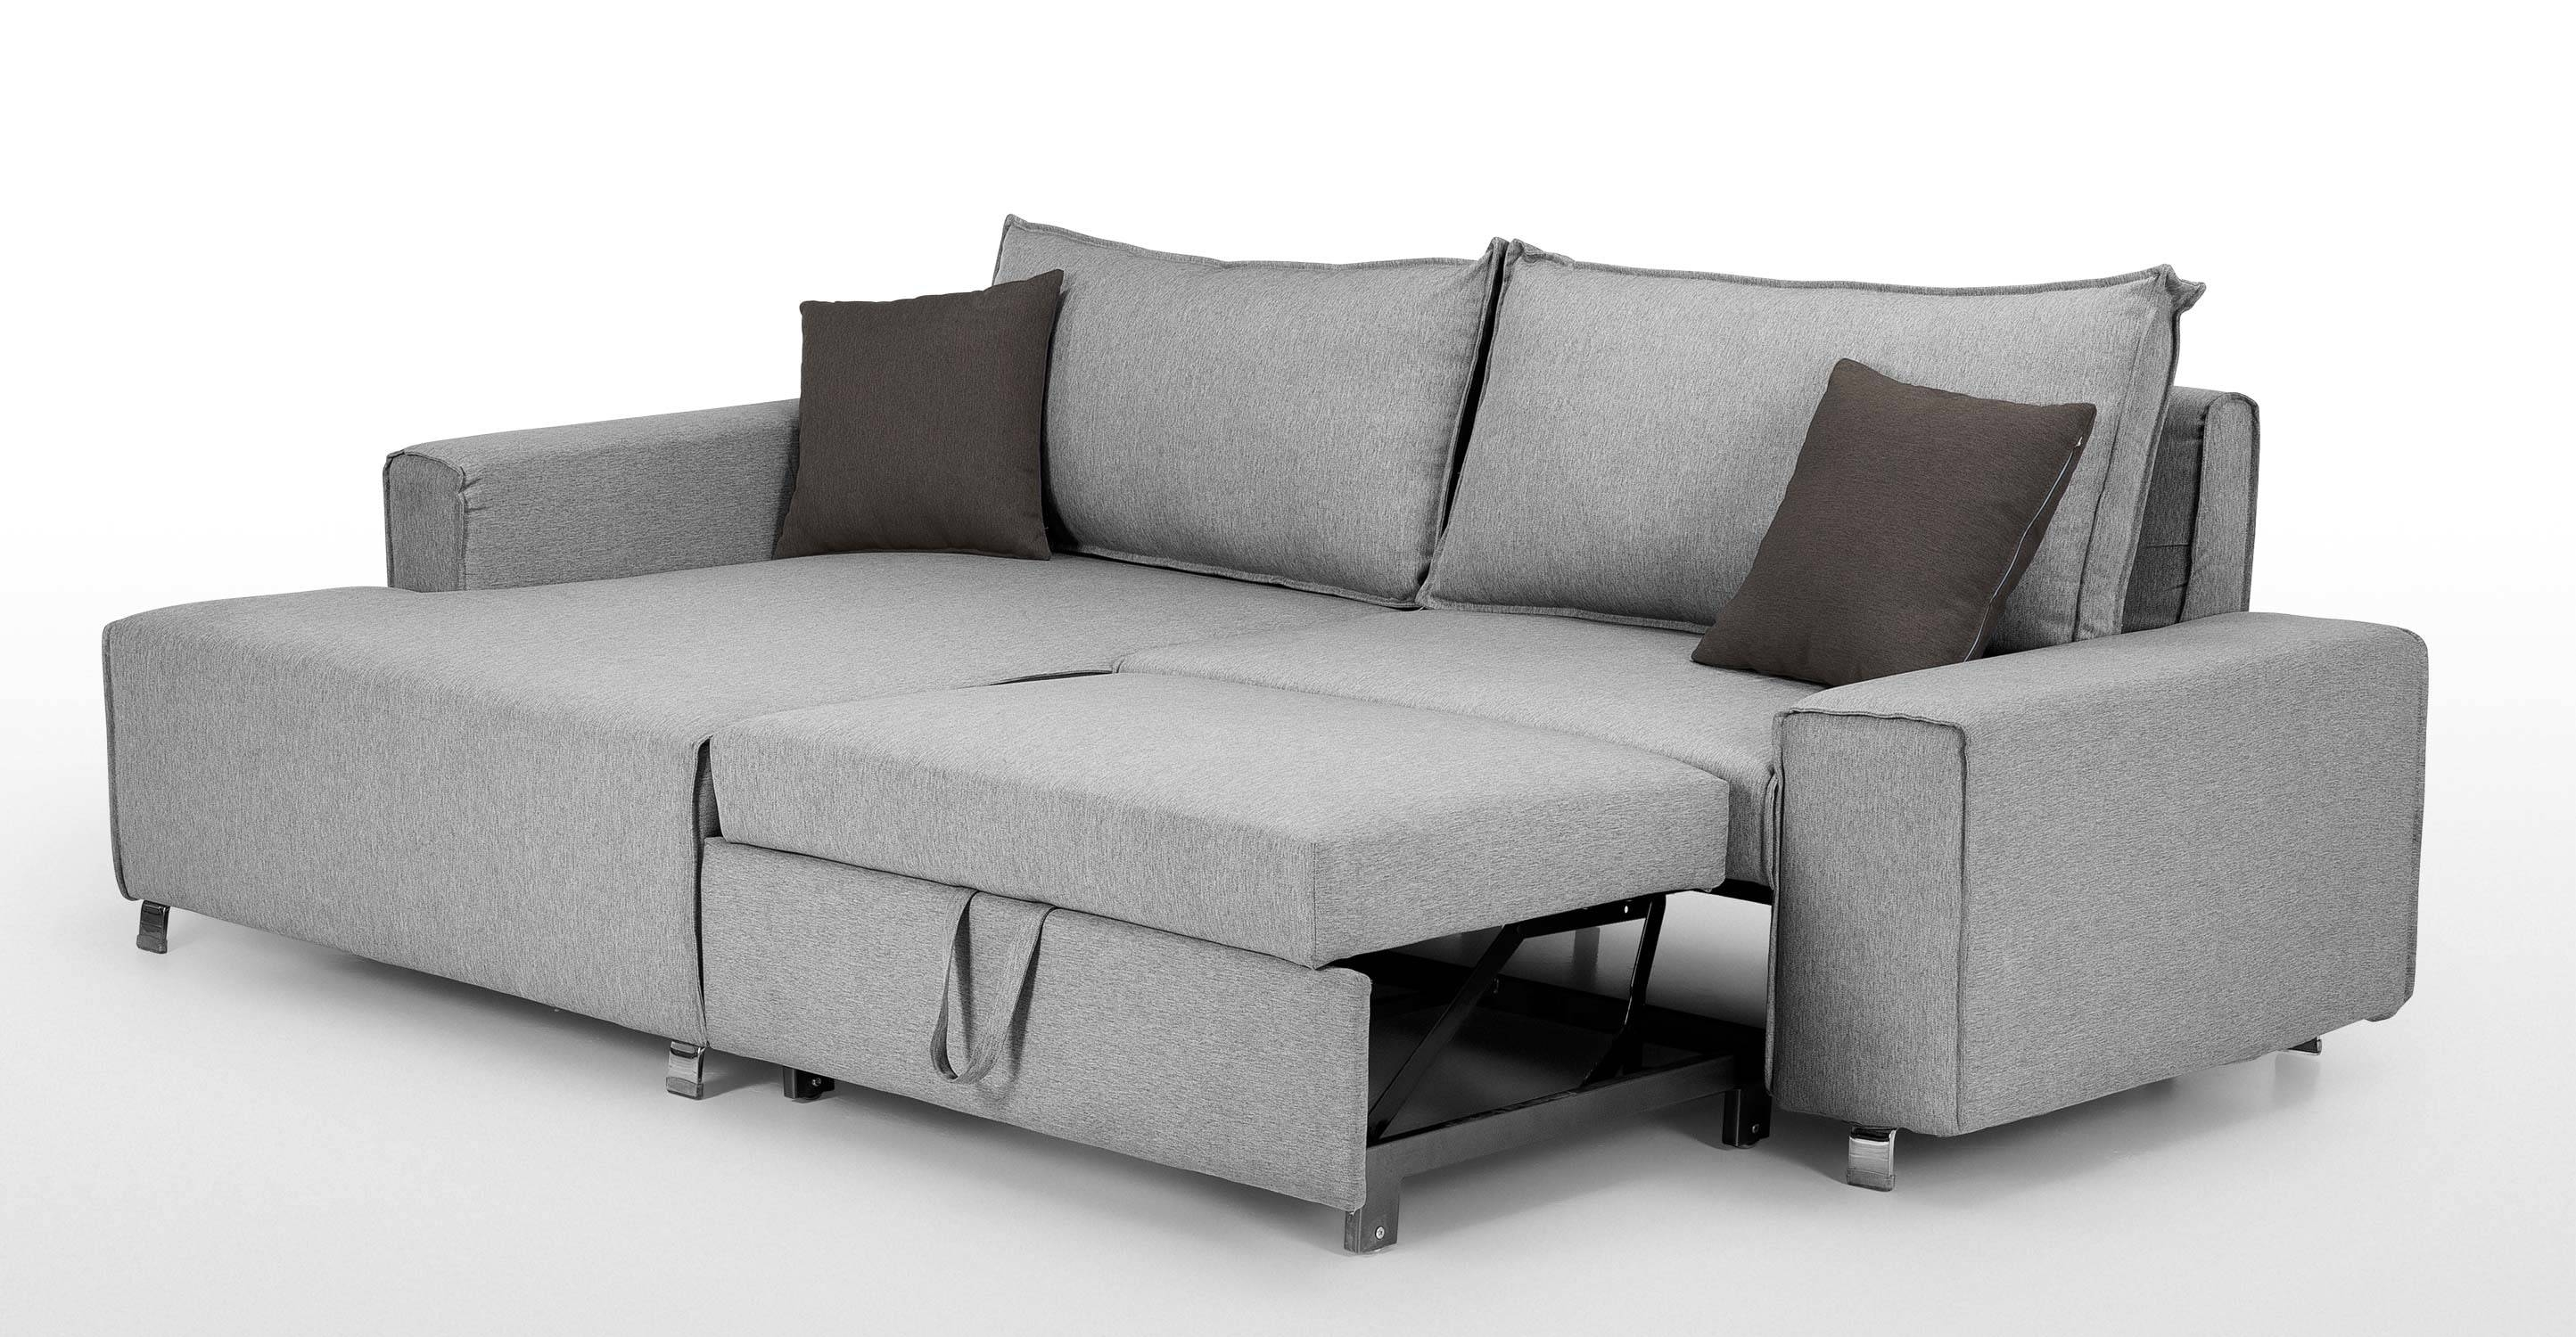 Corner Unit Sofa Beds With Storage | Centerfieldbar throughout Small Grey Sofas (Image 3 of 15)